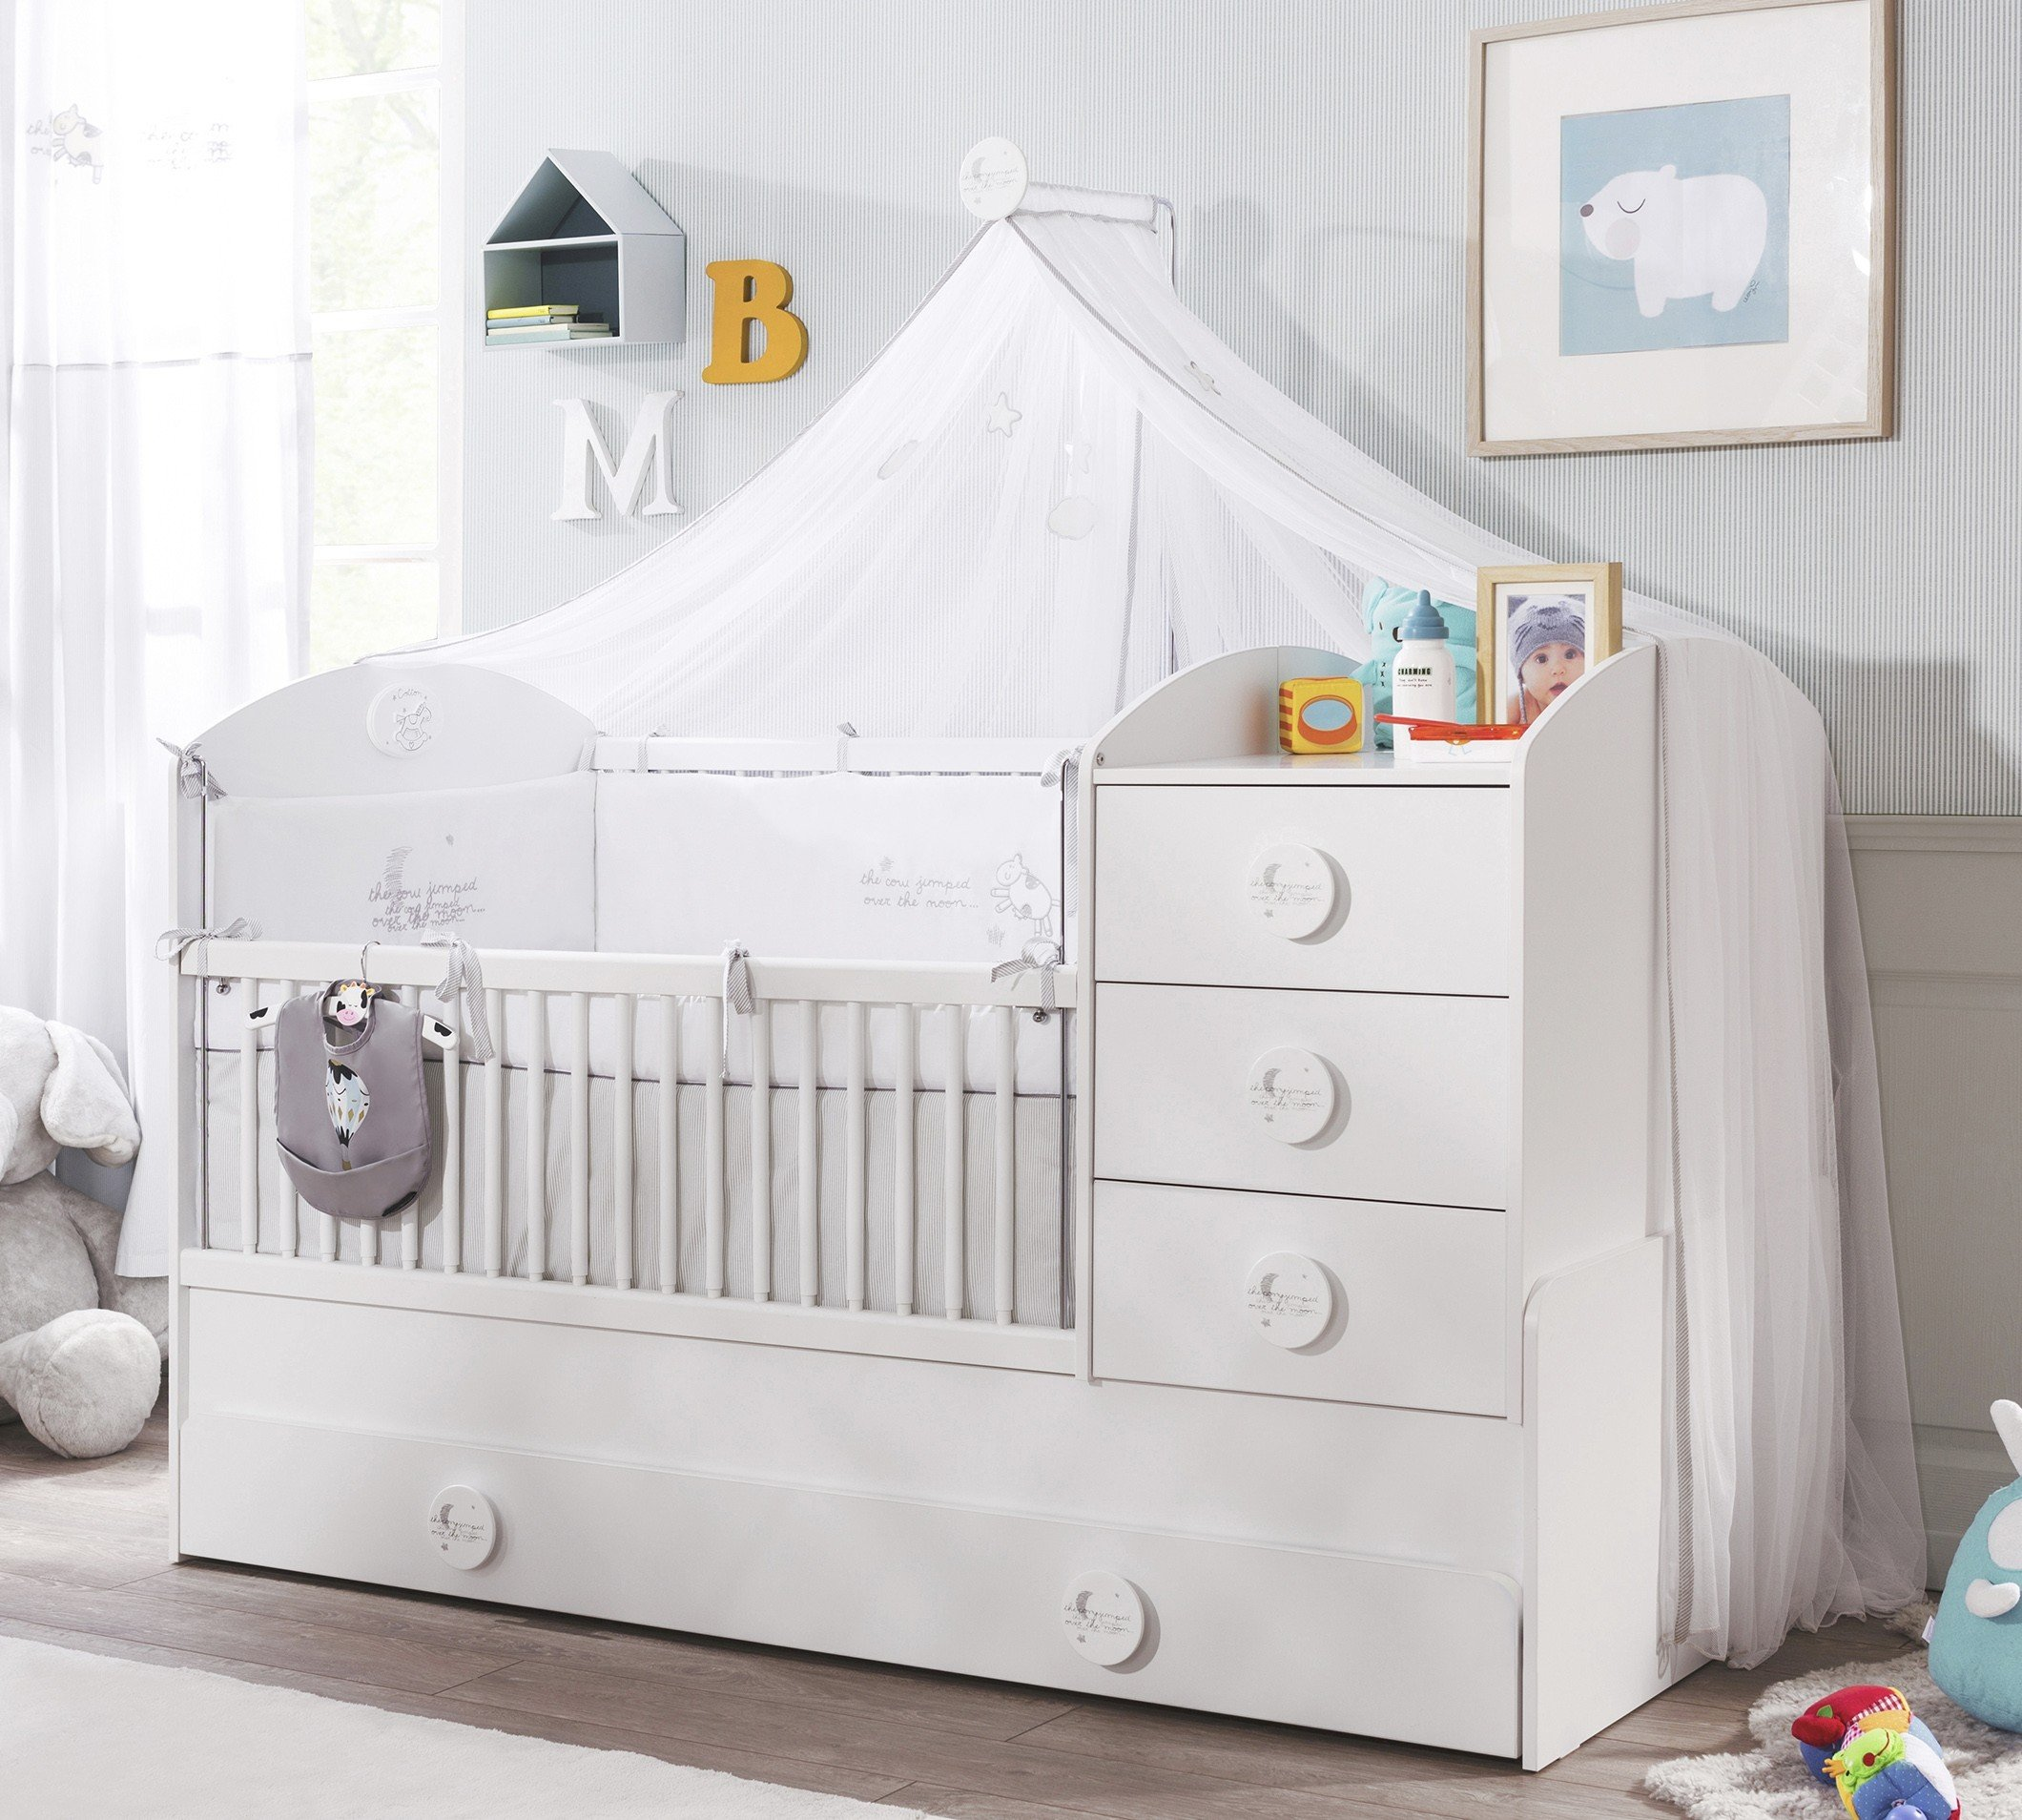 cilek baby cotton betthimmel babybett accessoires panda kinderm bel. Black Bedroom Furniture Sets. Home Design Ideas